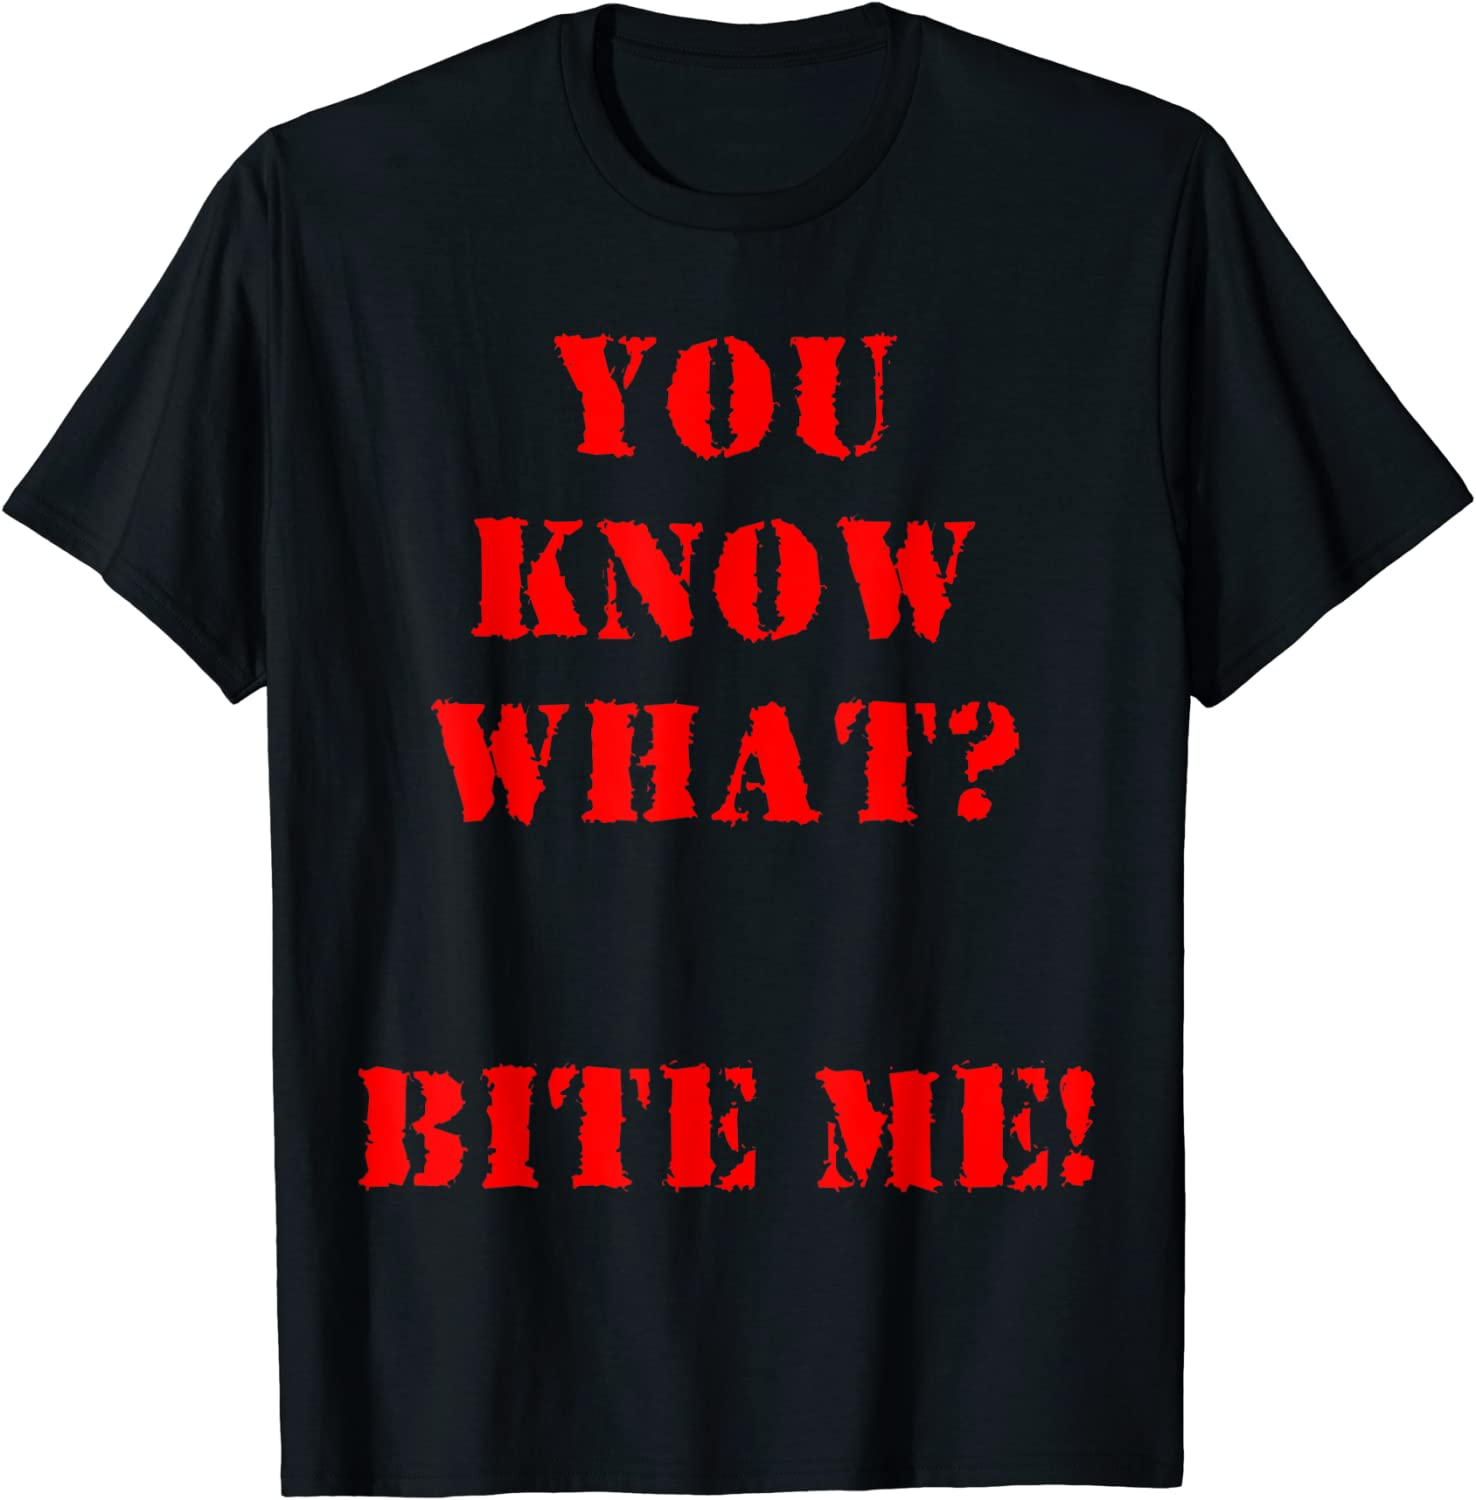 You Know What? Bite Me ! T-shirt